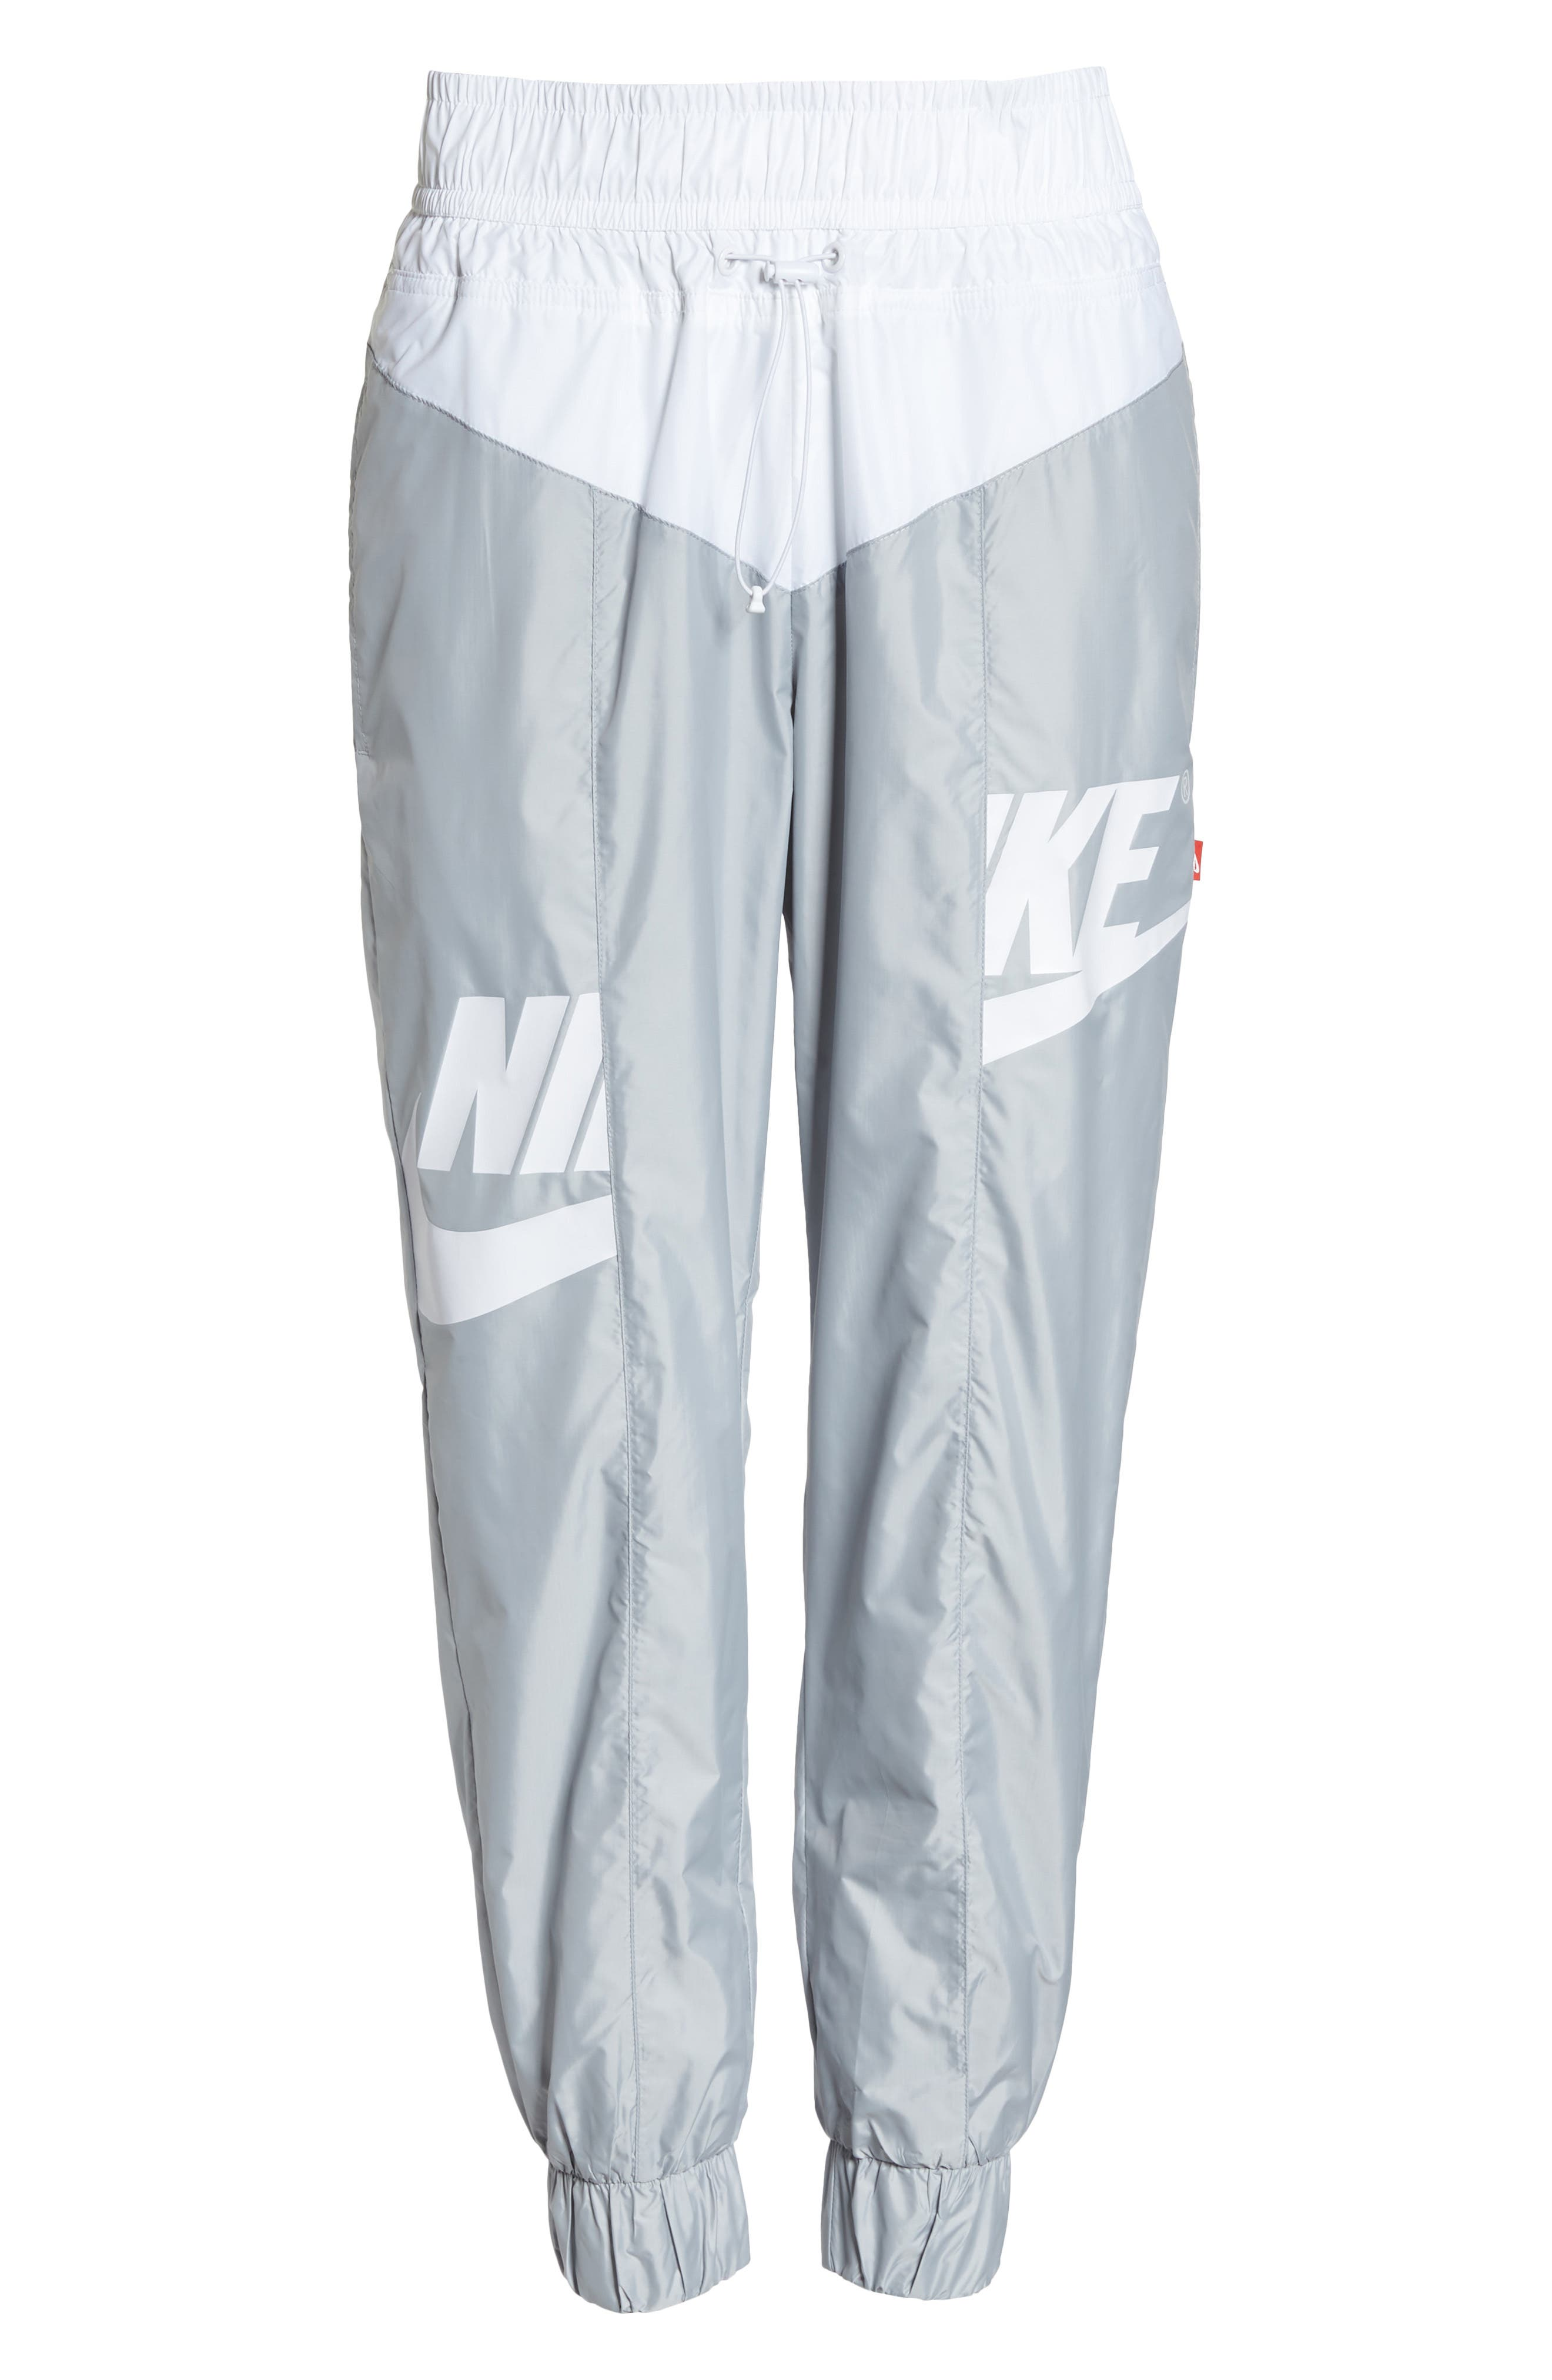 Sportswear Windrunner pants,                             Alternate thumbnail 7, color,                             Wolf Grey/ Summit White